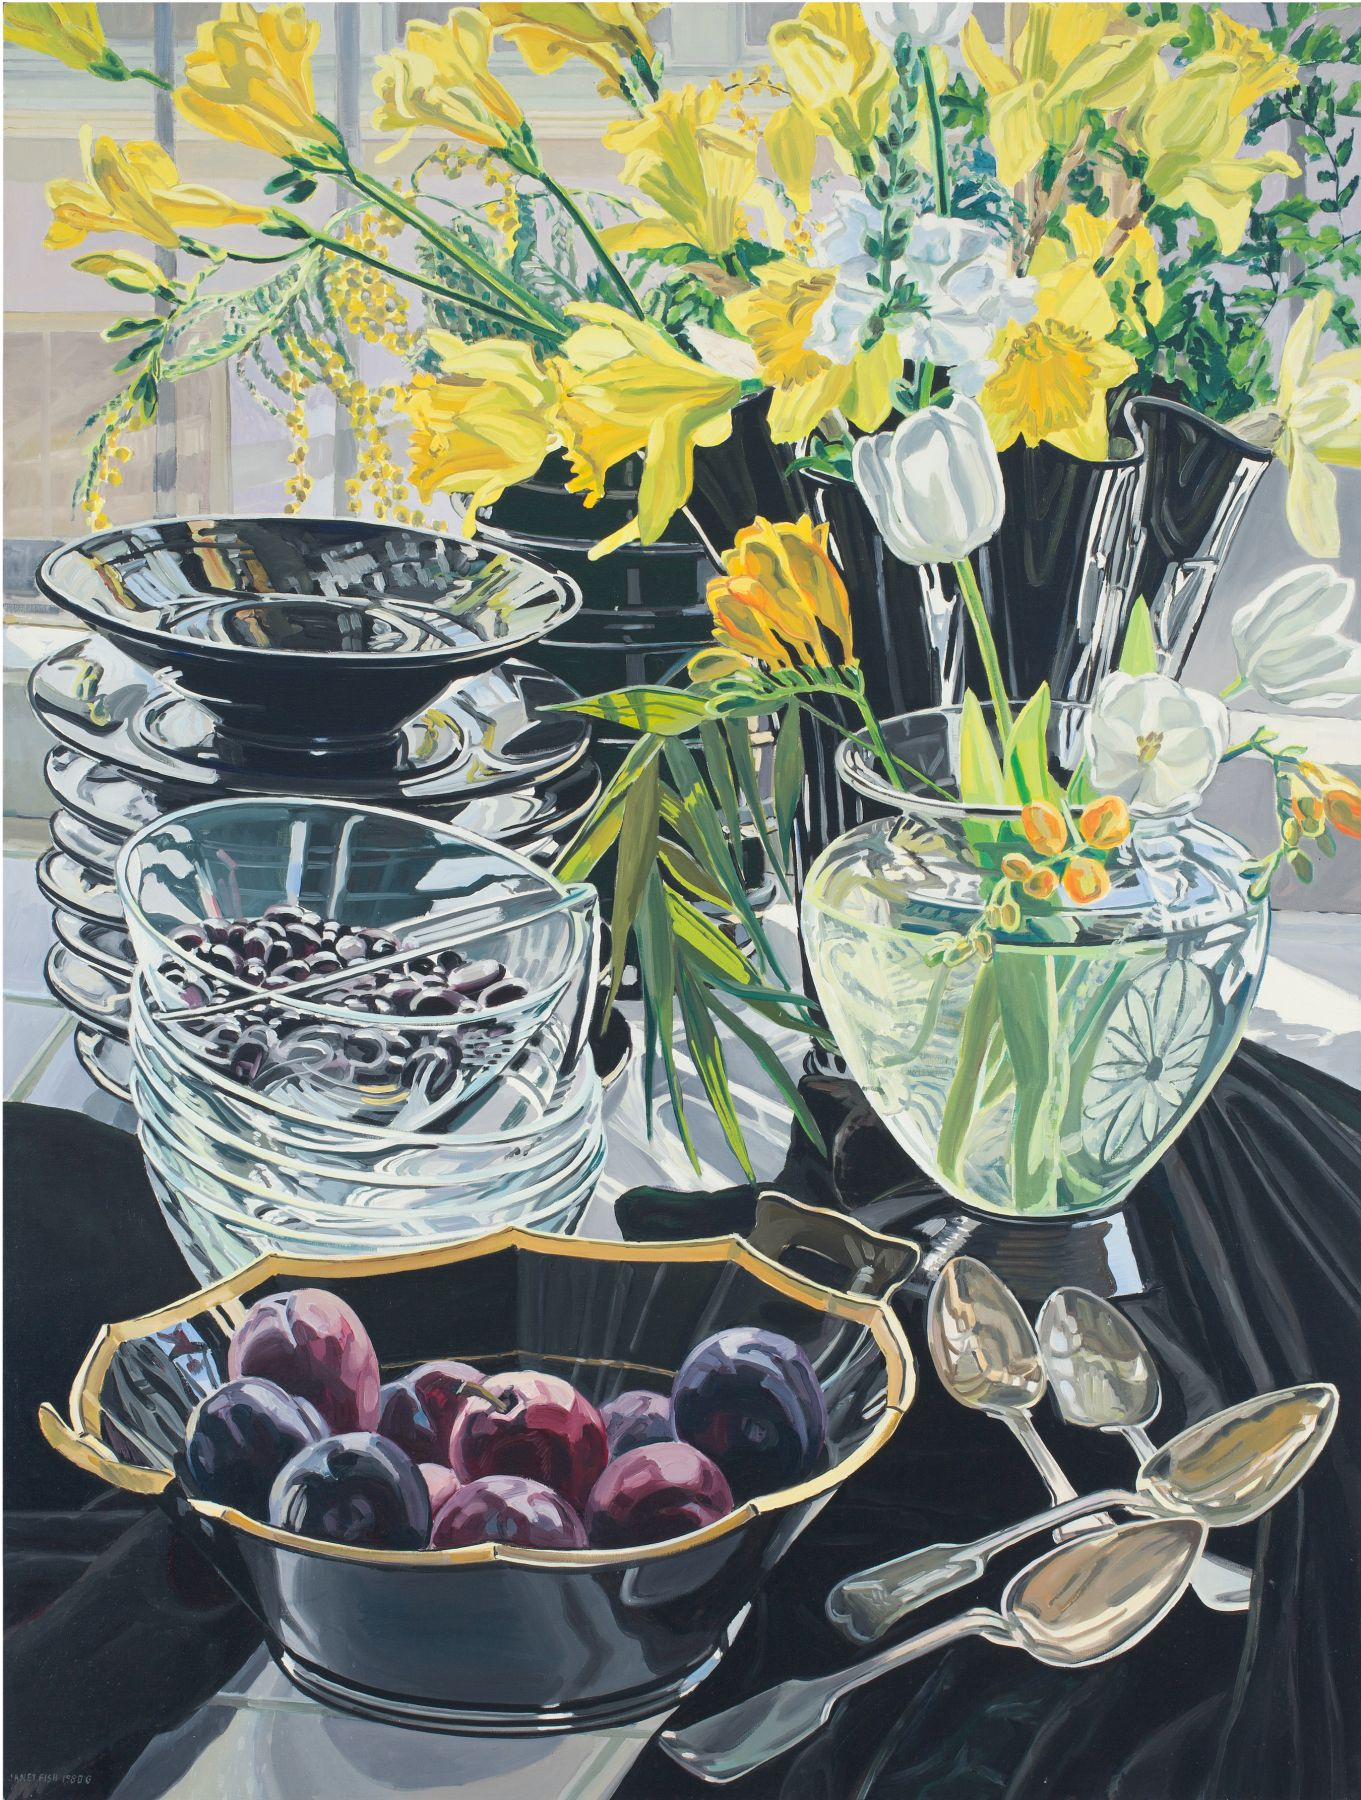 Black Vase with Daffodils, 1980, Oil on canvas